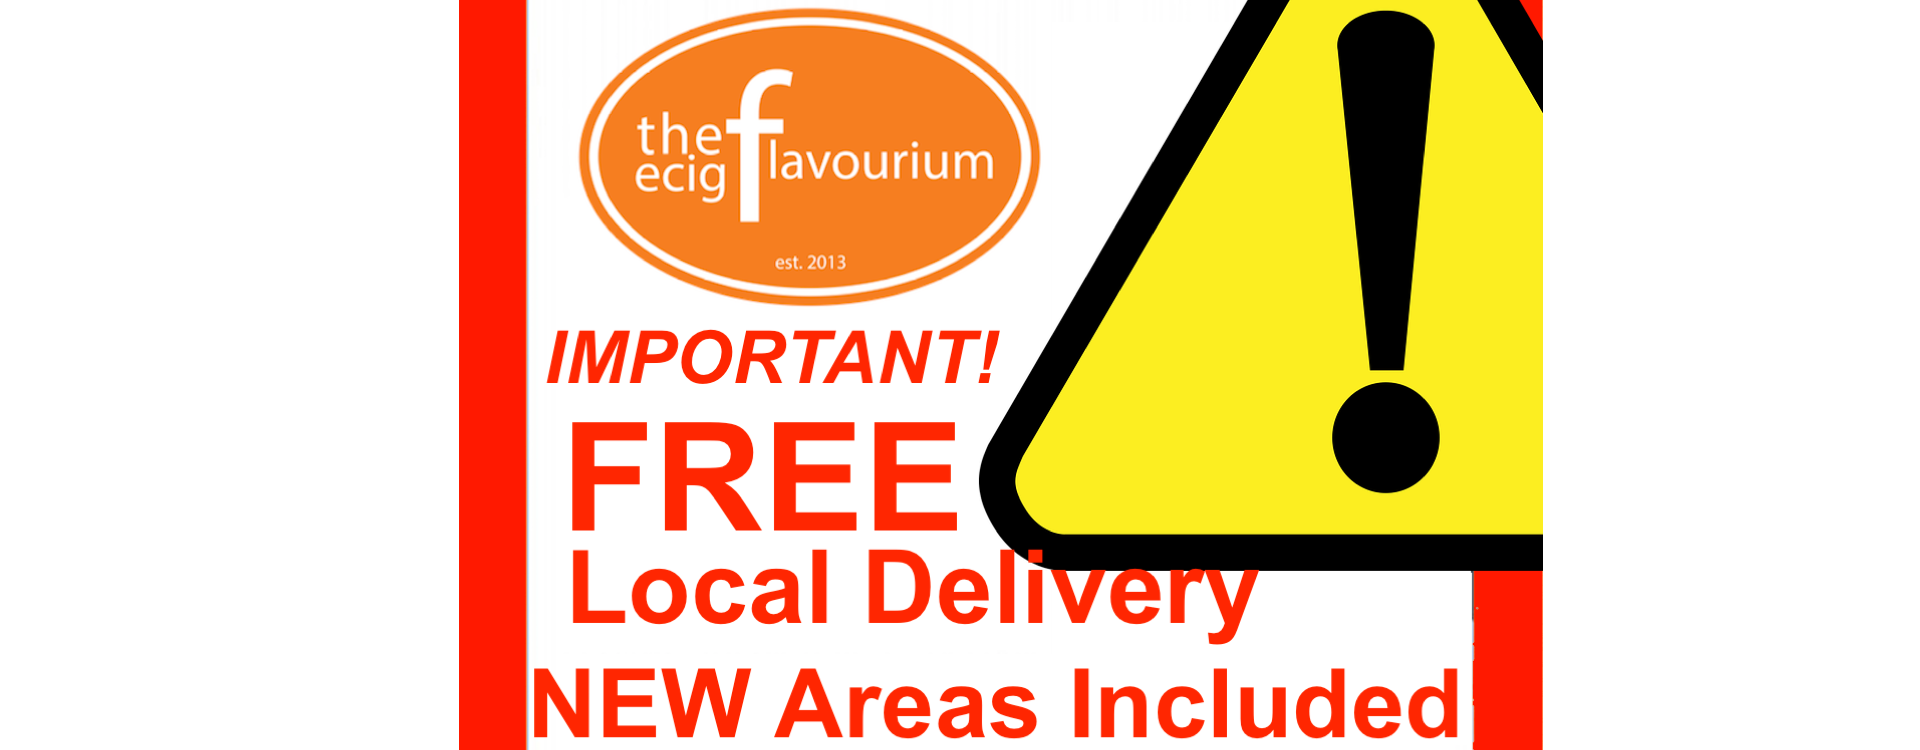 IMPORTANT: FREE Local Delivery Expanded To Include Additional Areas